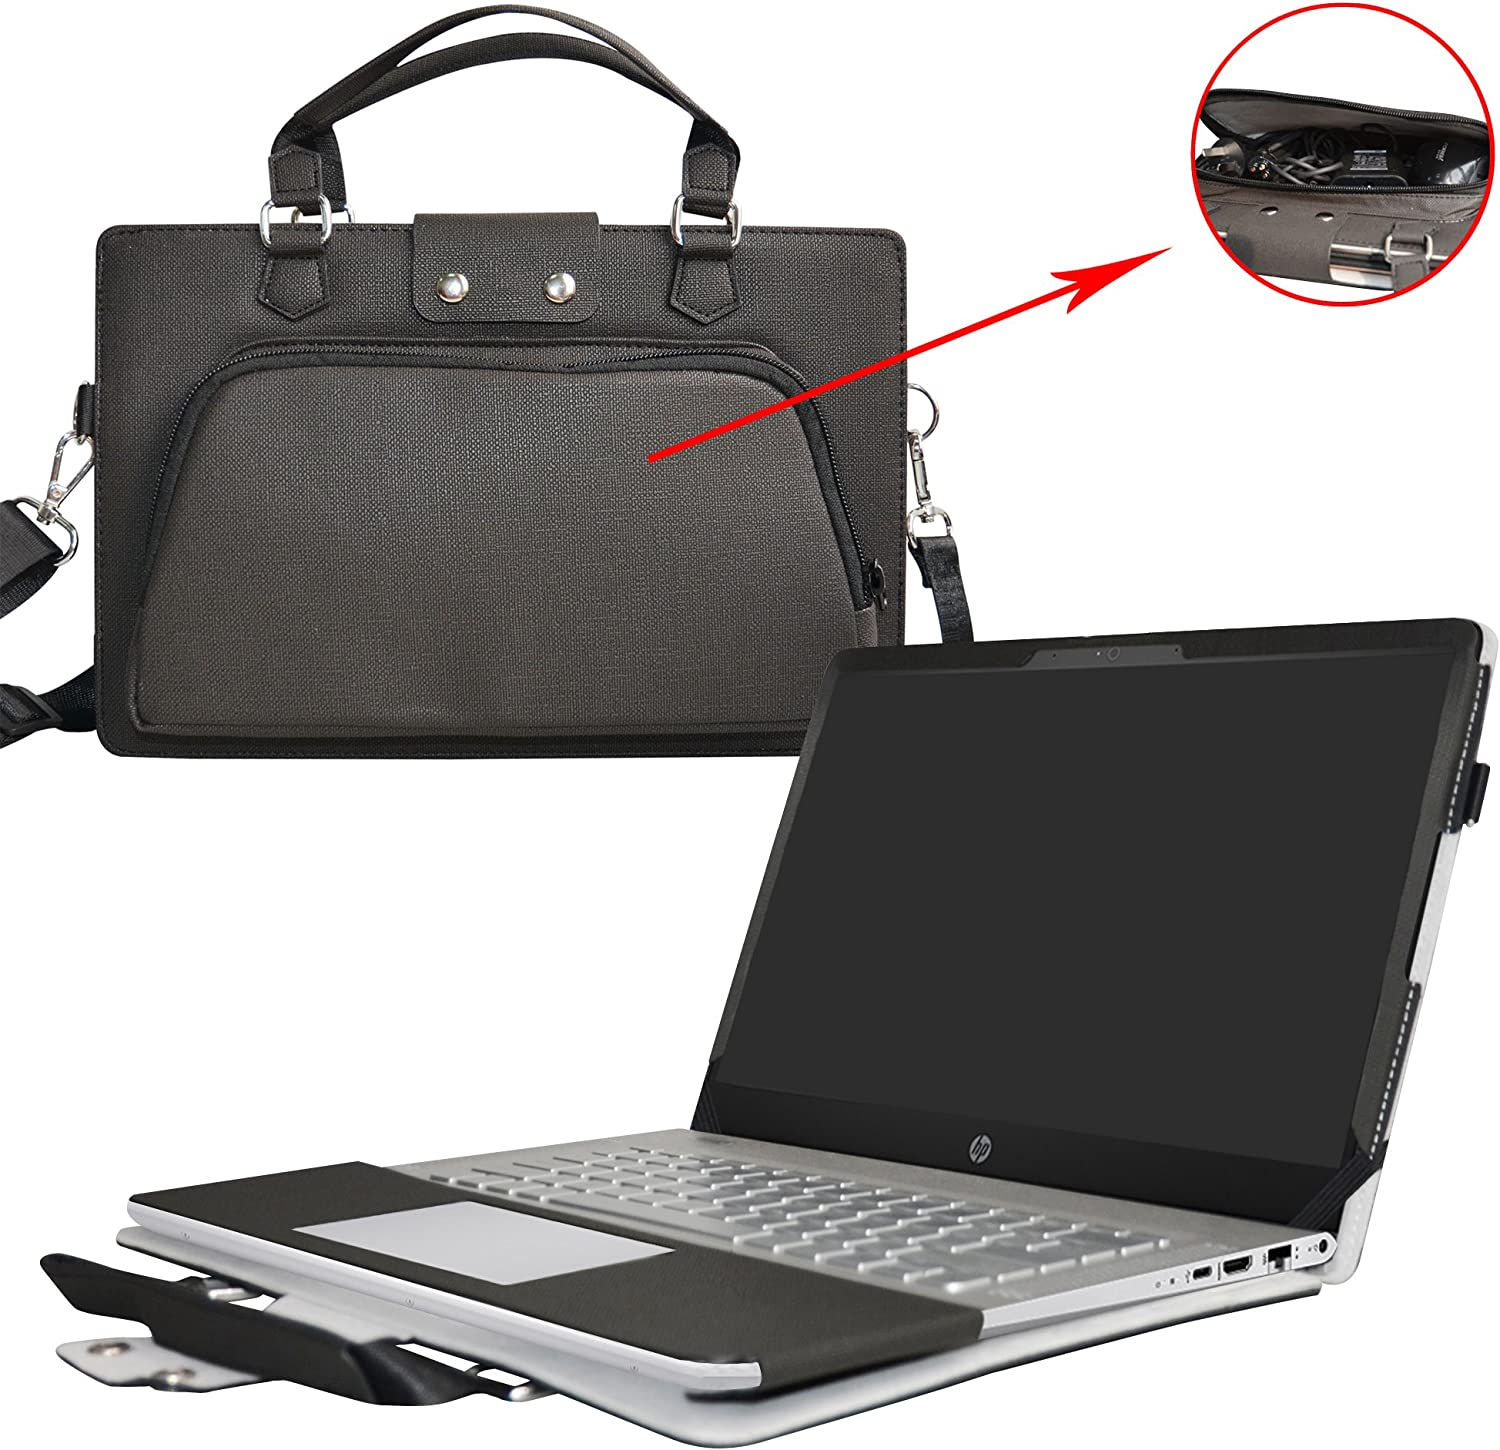 """Pavilion 15 Case,2 in 1 Accurately Designed Protective PU Leather Cover +Portable Carrying Bag for 15.6"""" HP Pavilion 15 15-au000 Series Laptop(Not fit 15-cc000/15-p000/15-b000/15-ab000/15-n000),Black"""